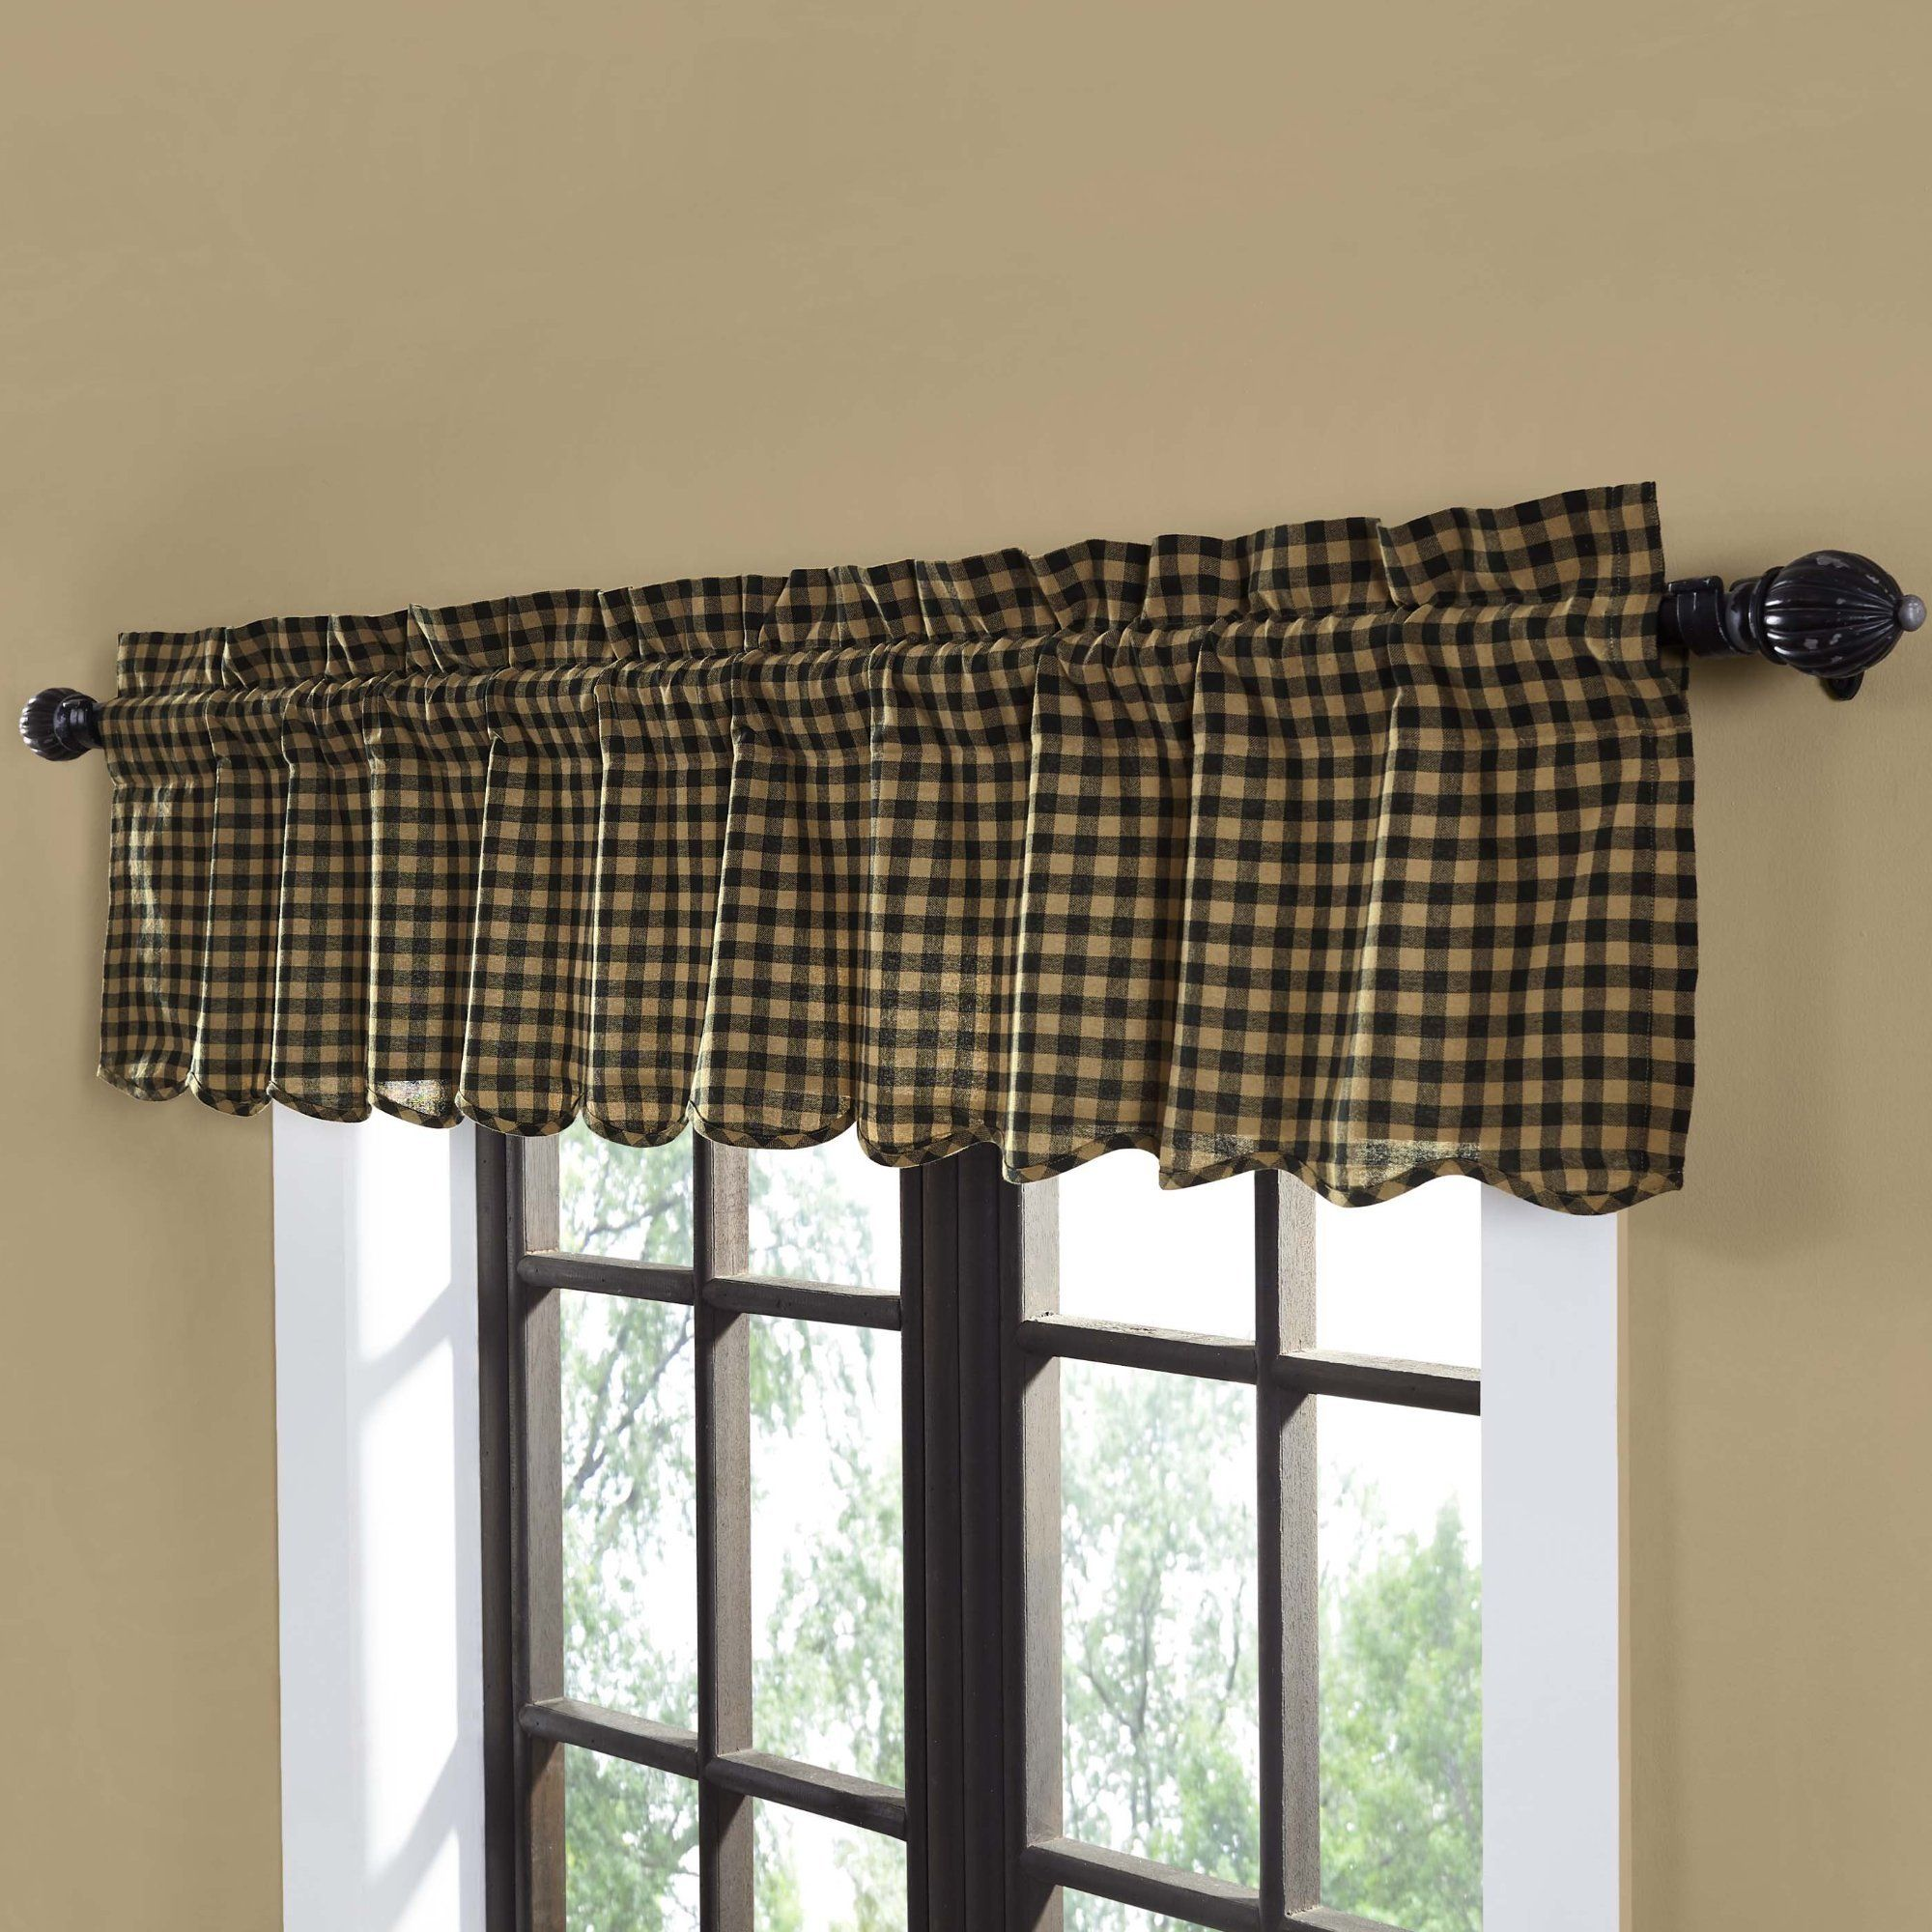 Curtains Blinds Black Tan Check Scalloped Cafe Curtains Country Style Window Tier Set 24 L Home Furniture Diy Mhg Co Ke